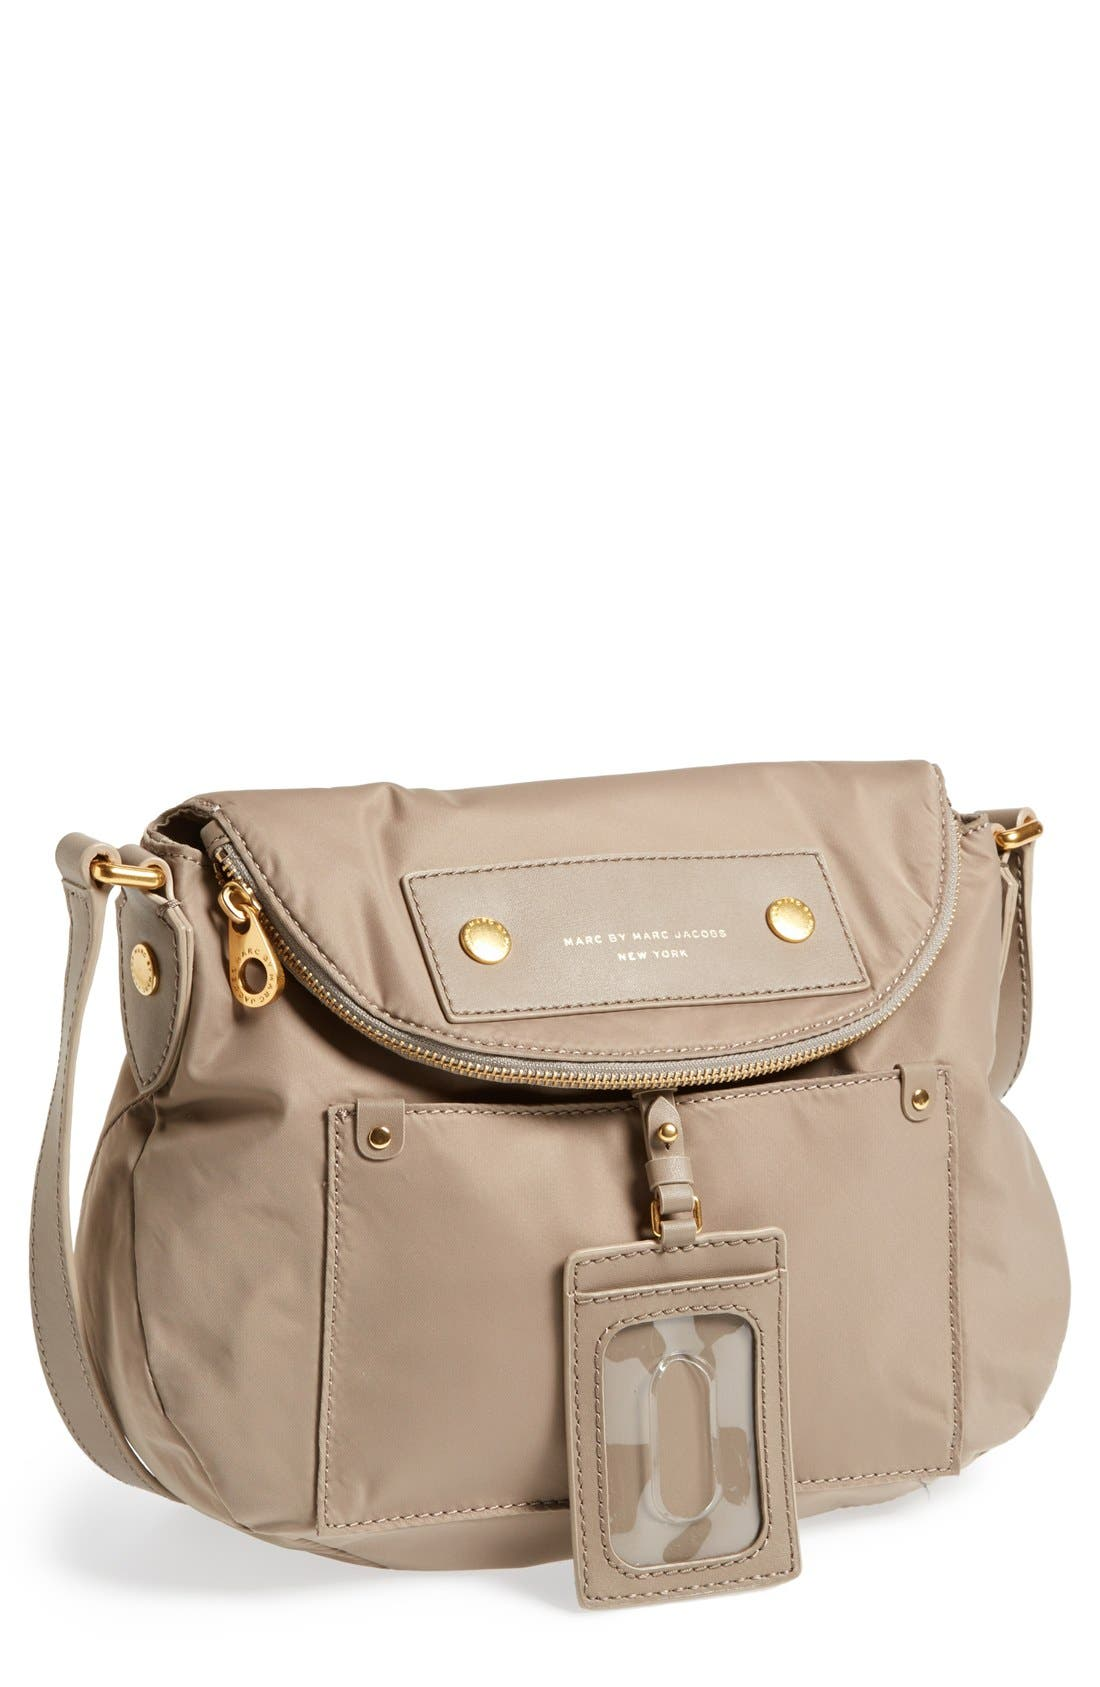 Alternate Image 1 Selected - MARC BY MARC JACOBS ' Preppy Nylon - Natasha' Crossbody Bag